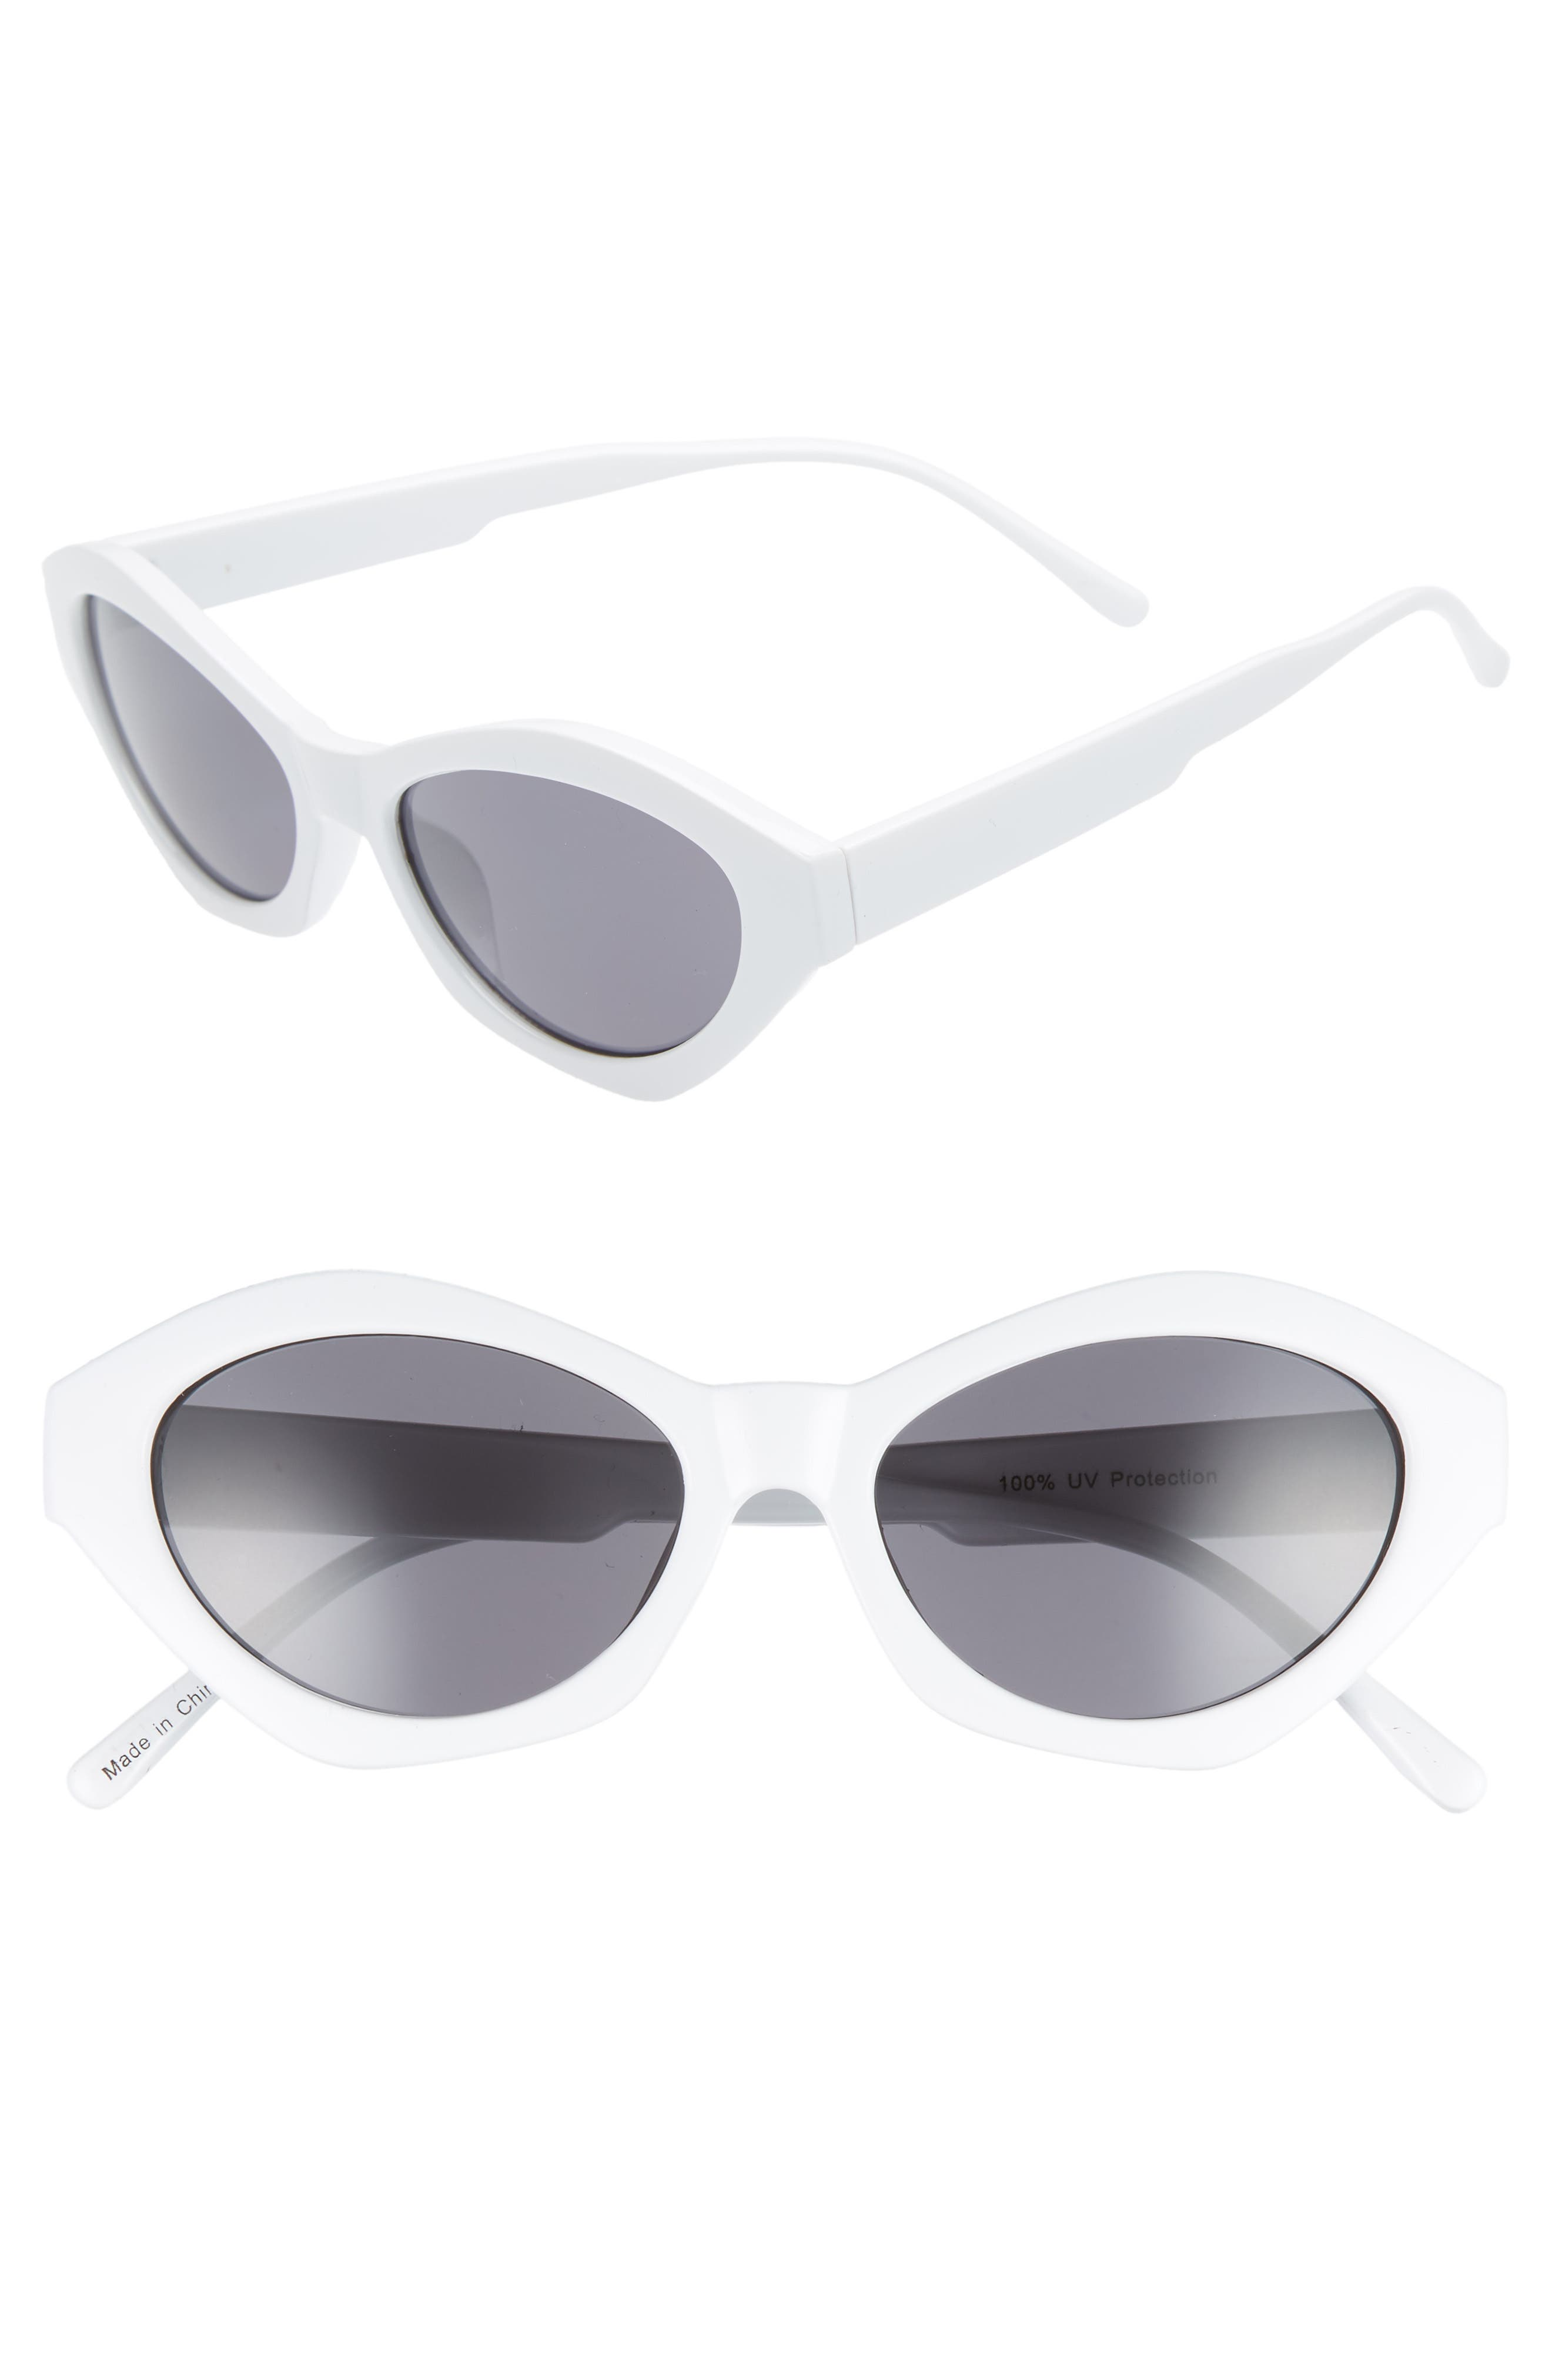 58mm Curved Cat Eye Sunglasses,                             Main thumbnail 1, color,                             White